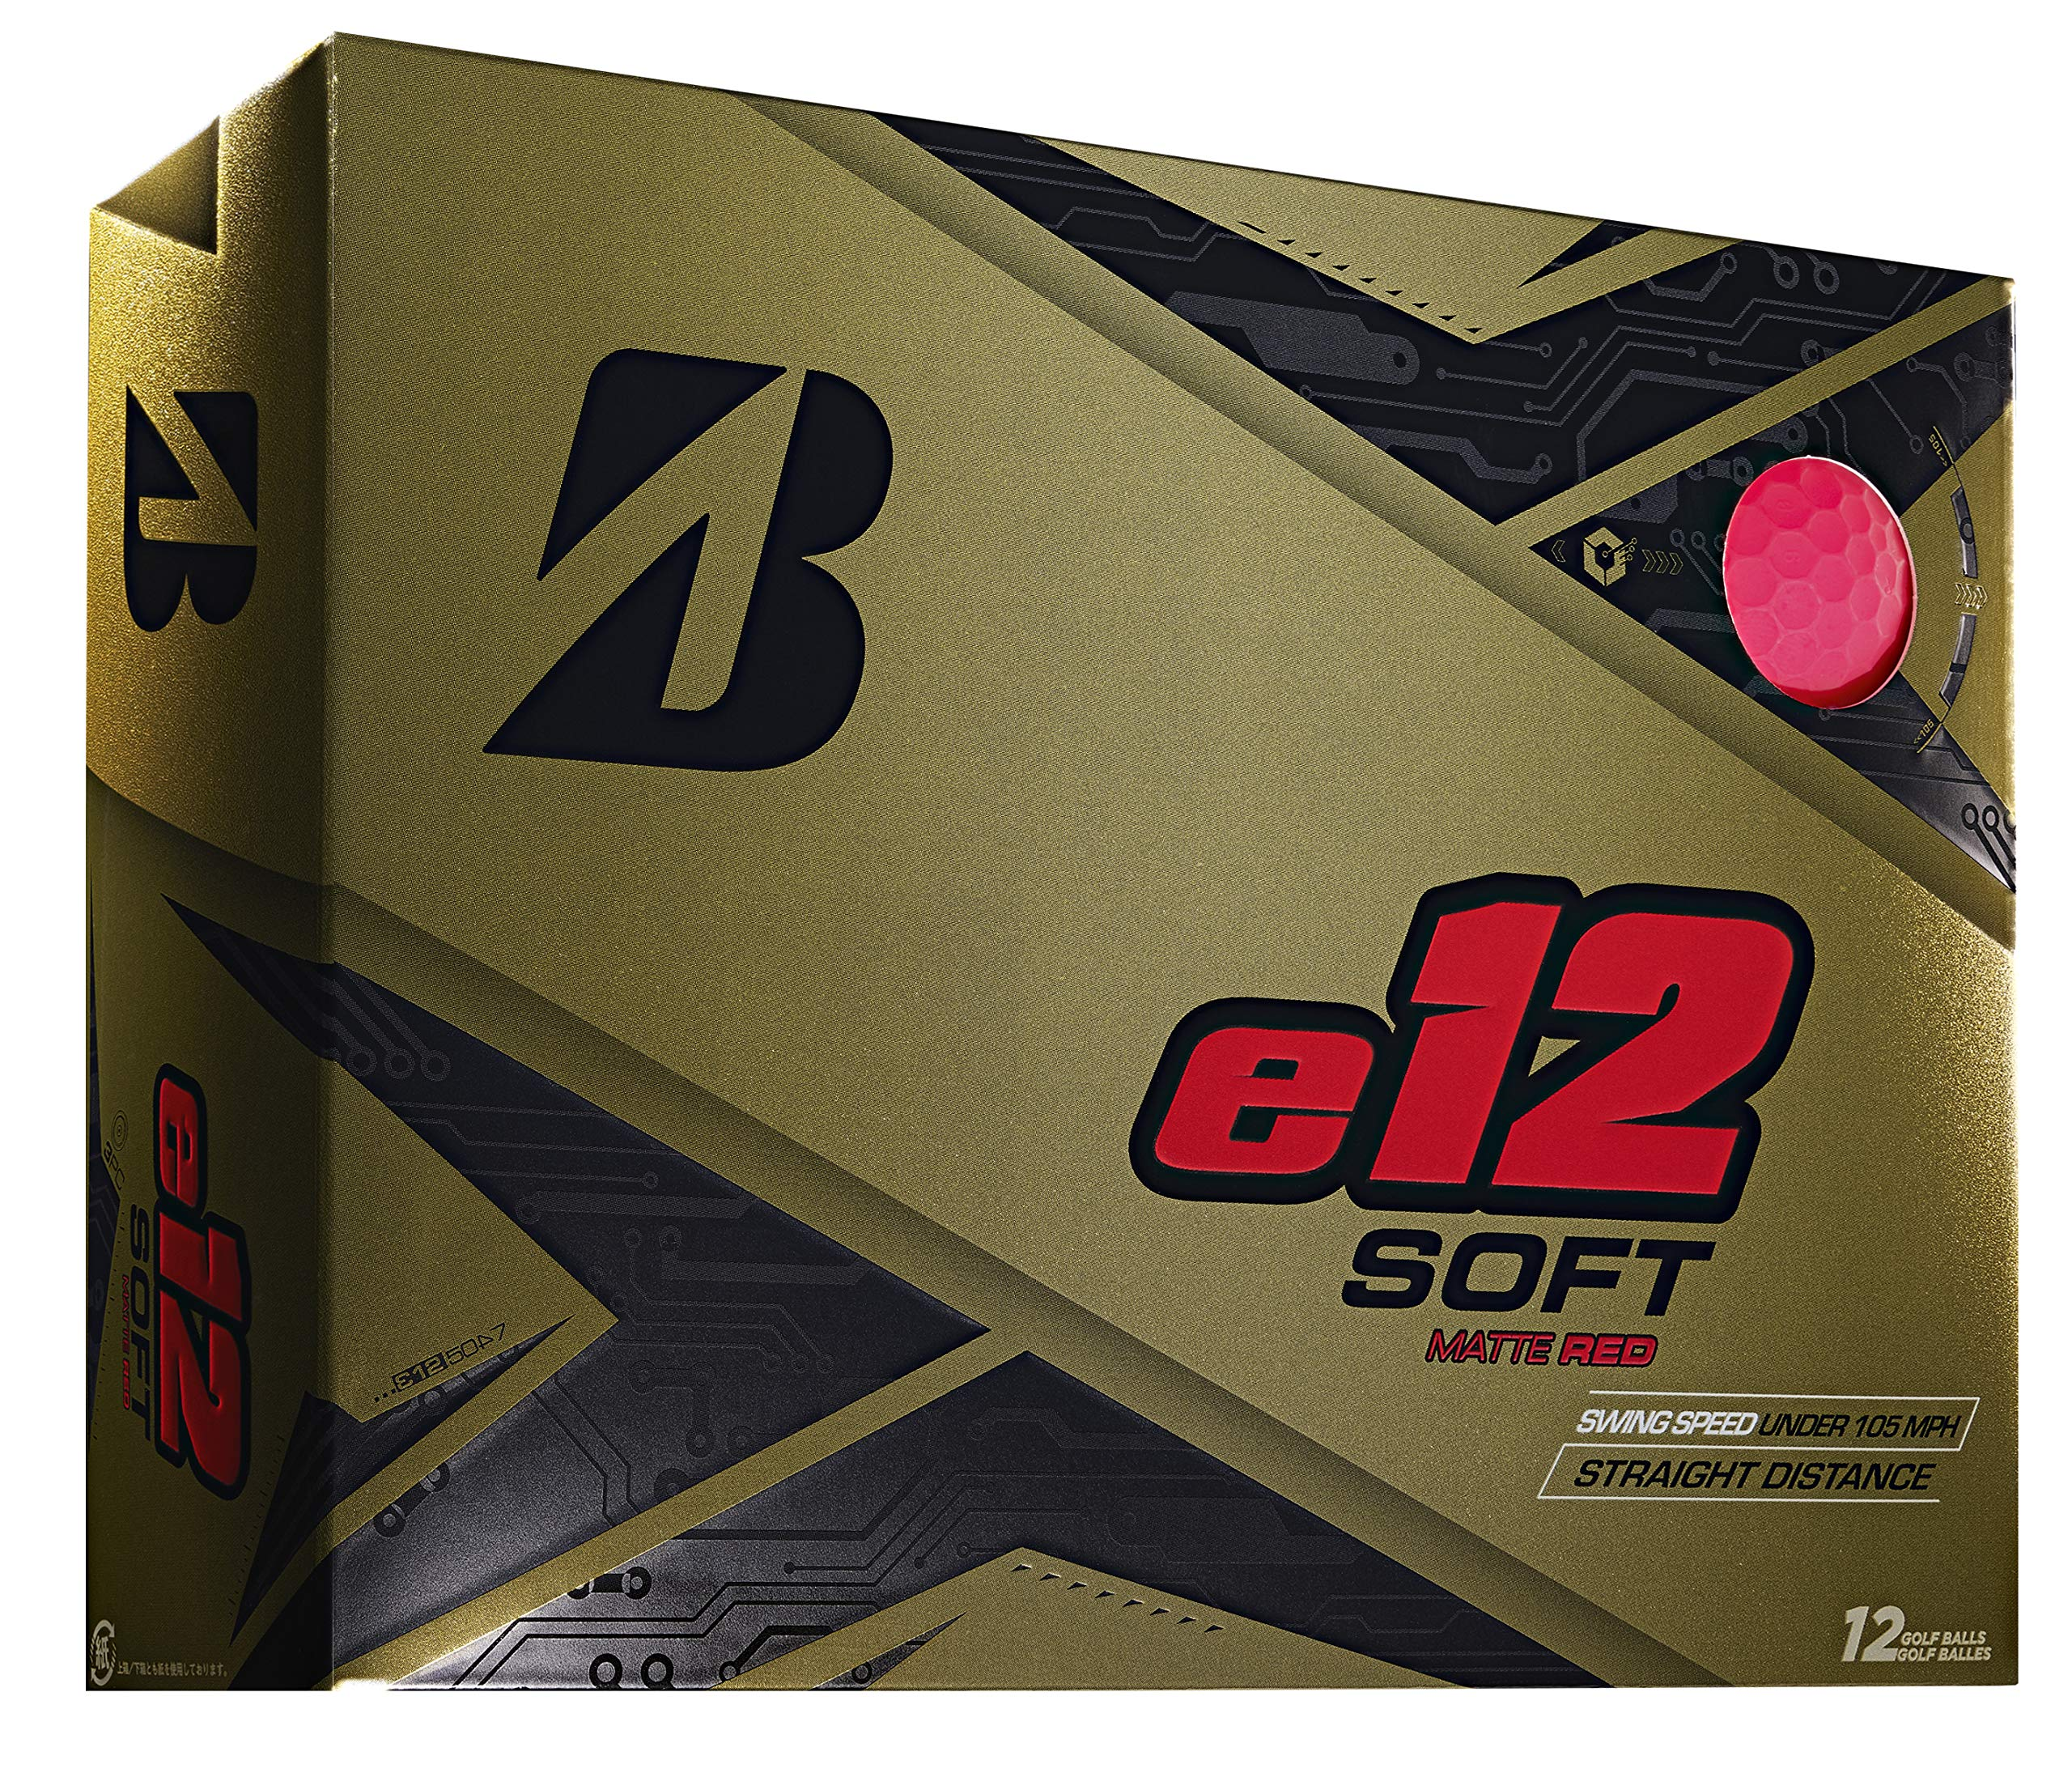 Bridgestone Golf e12 Soft Golf Balls, Matte Red (One Dozen) by Bridgestone Golf